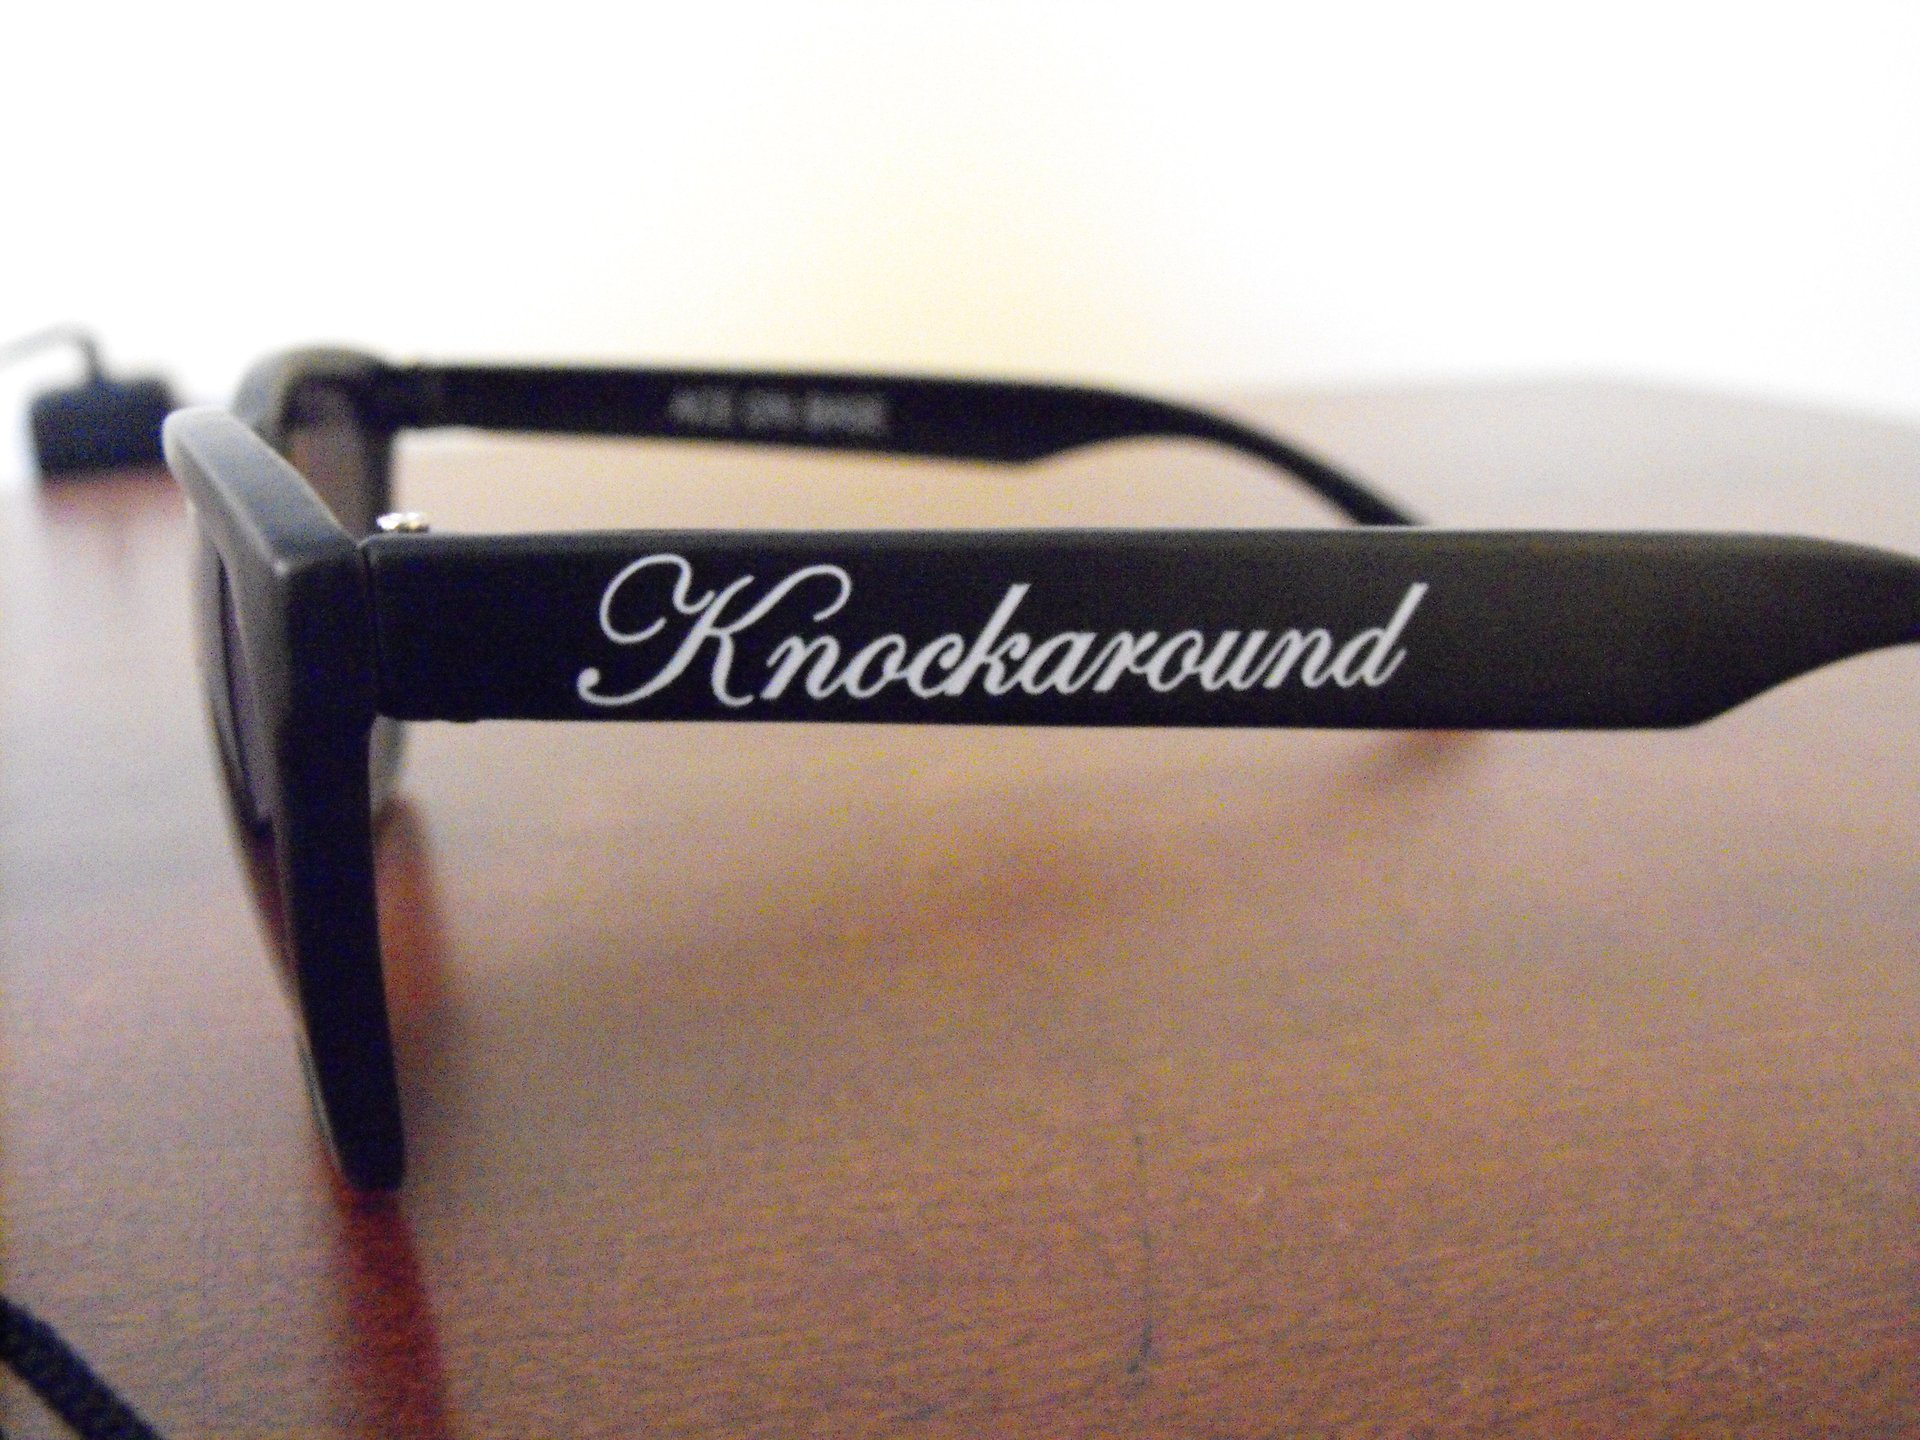 Knockarounds